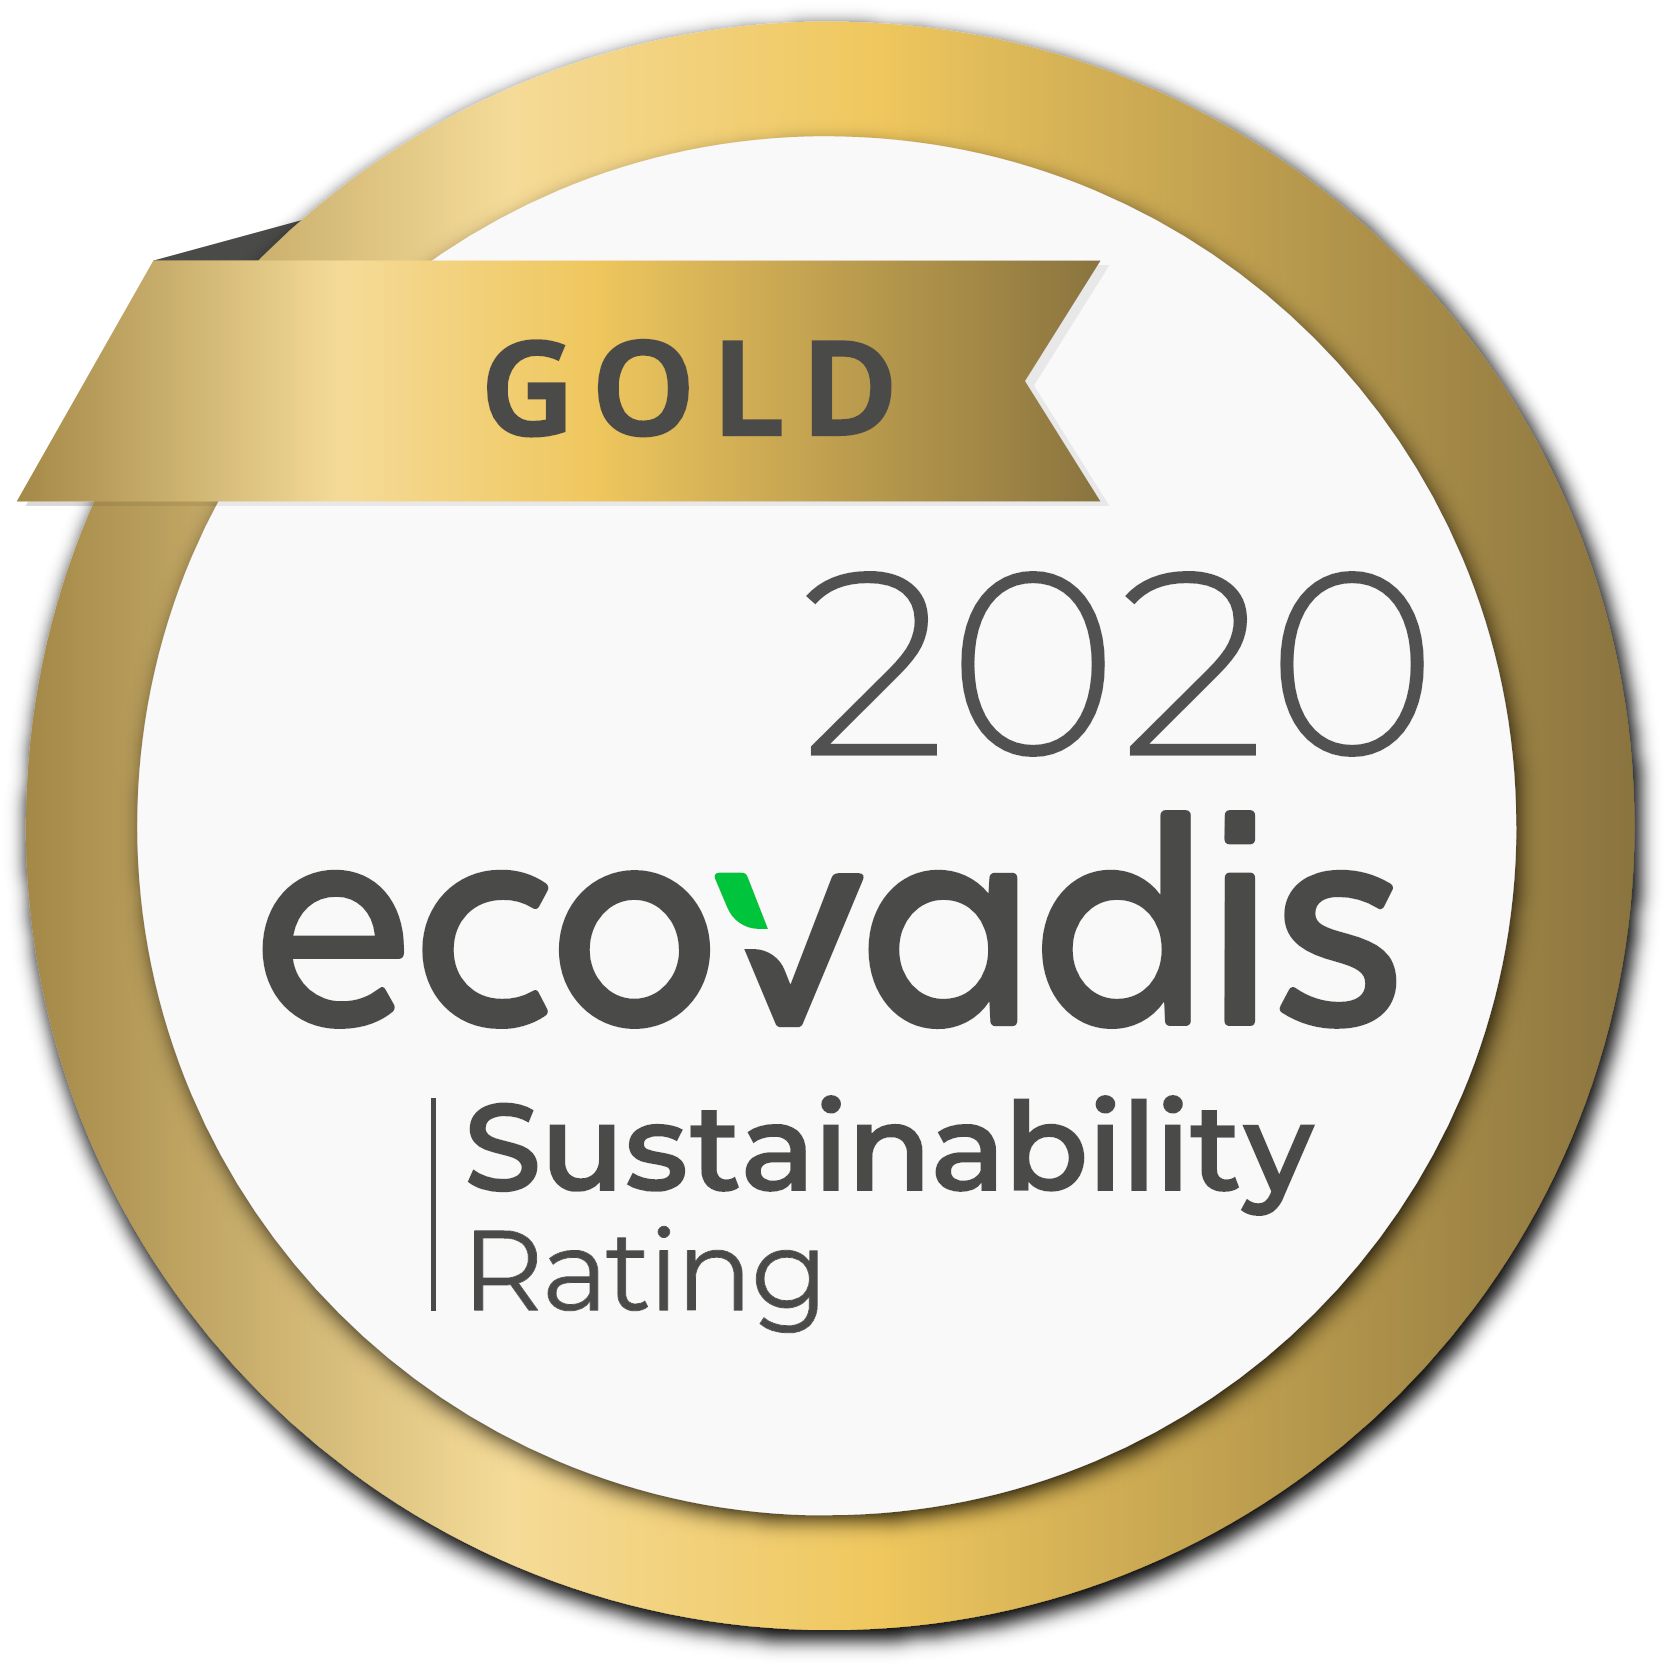 All good things come in threes: ALD Automotive Switzerland was awarded the EcoVadis Gold Medal